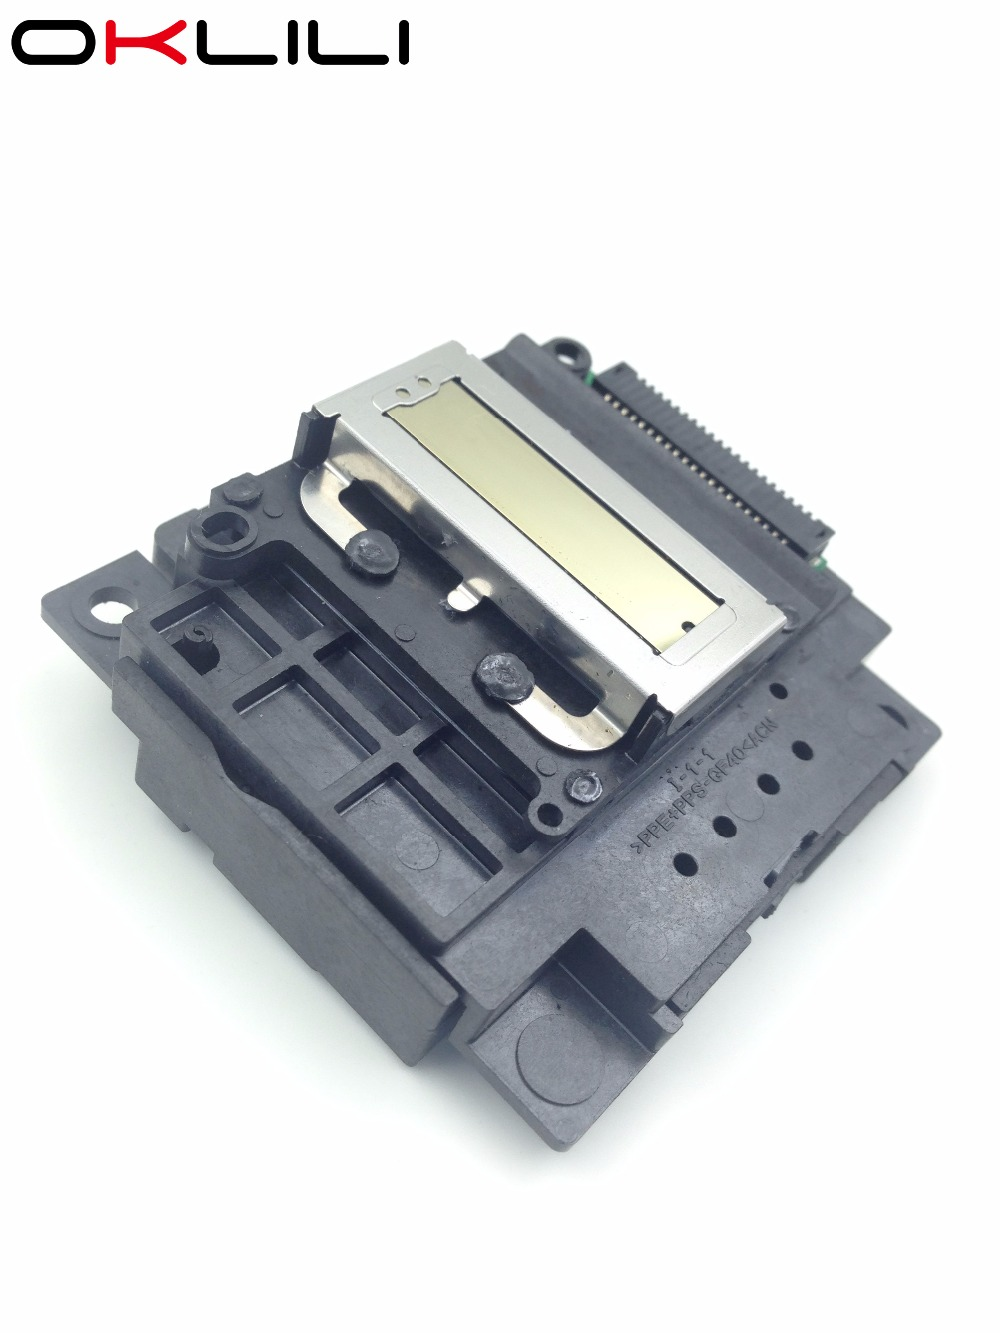 FA04000 FA04010 Printhead Print Head for Epson XP 302 XP 303 XP 305 XP 306 XP